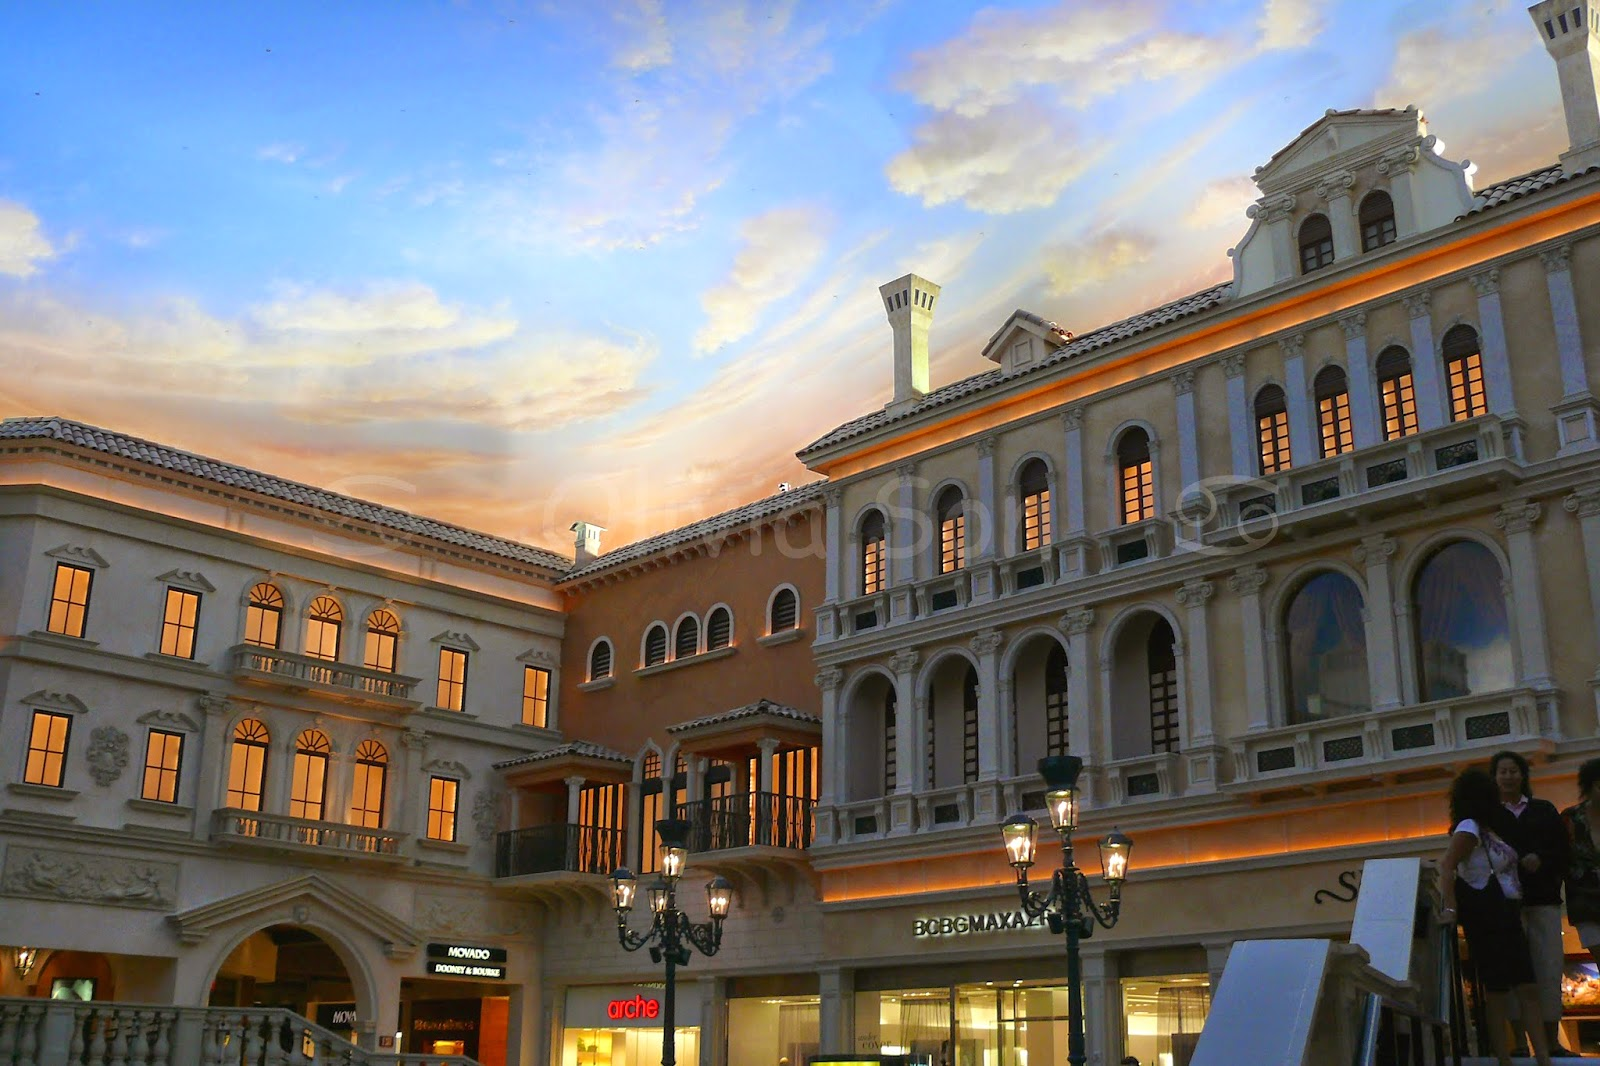 The Venetian, las vegas, nevada, usa